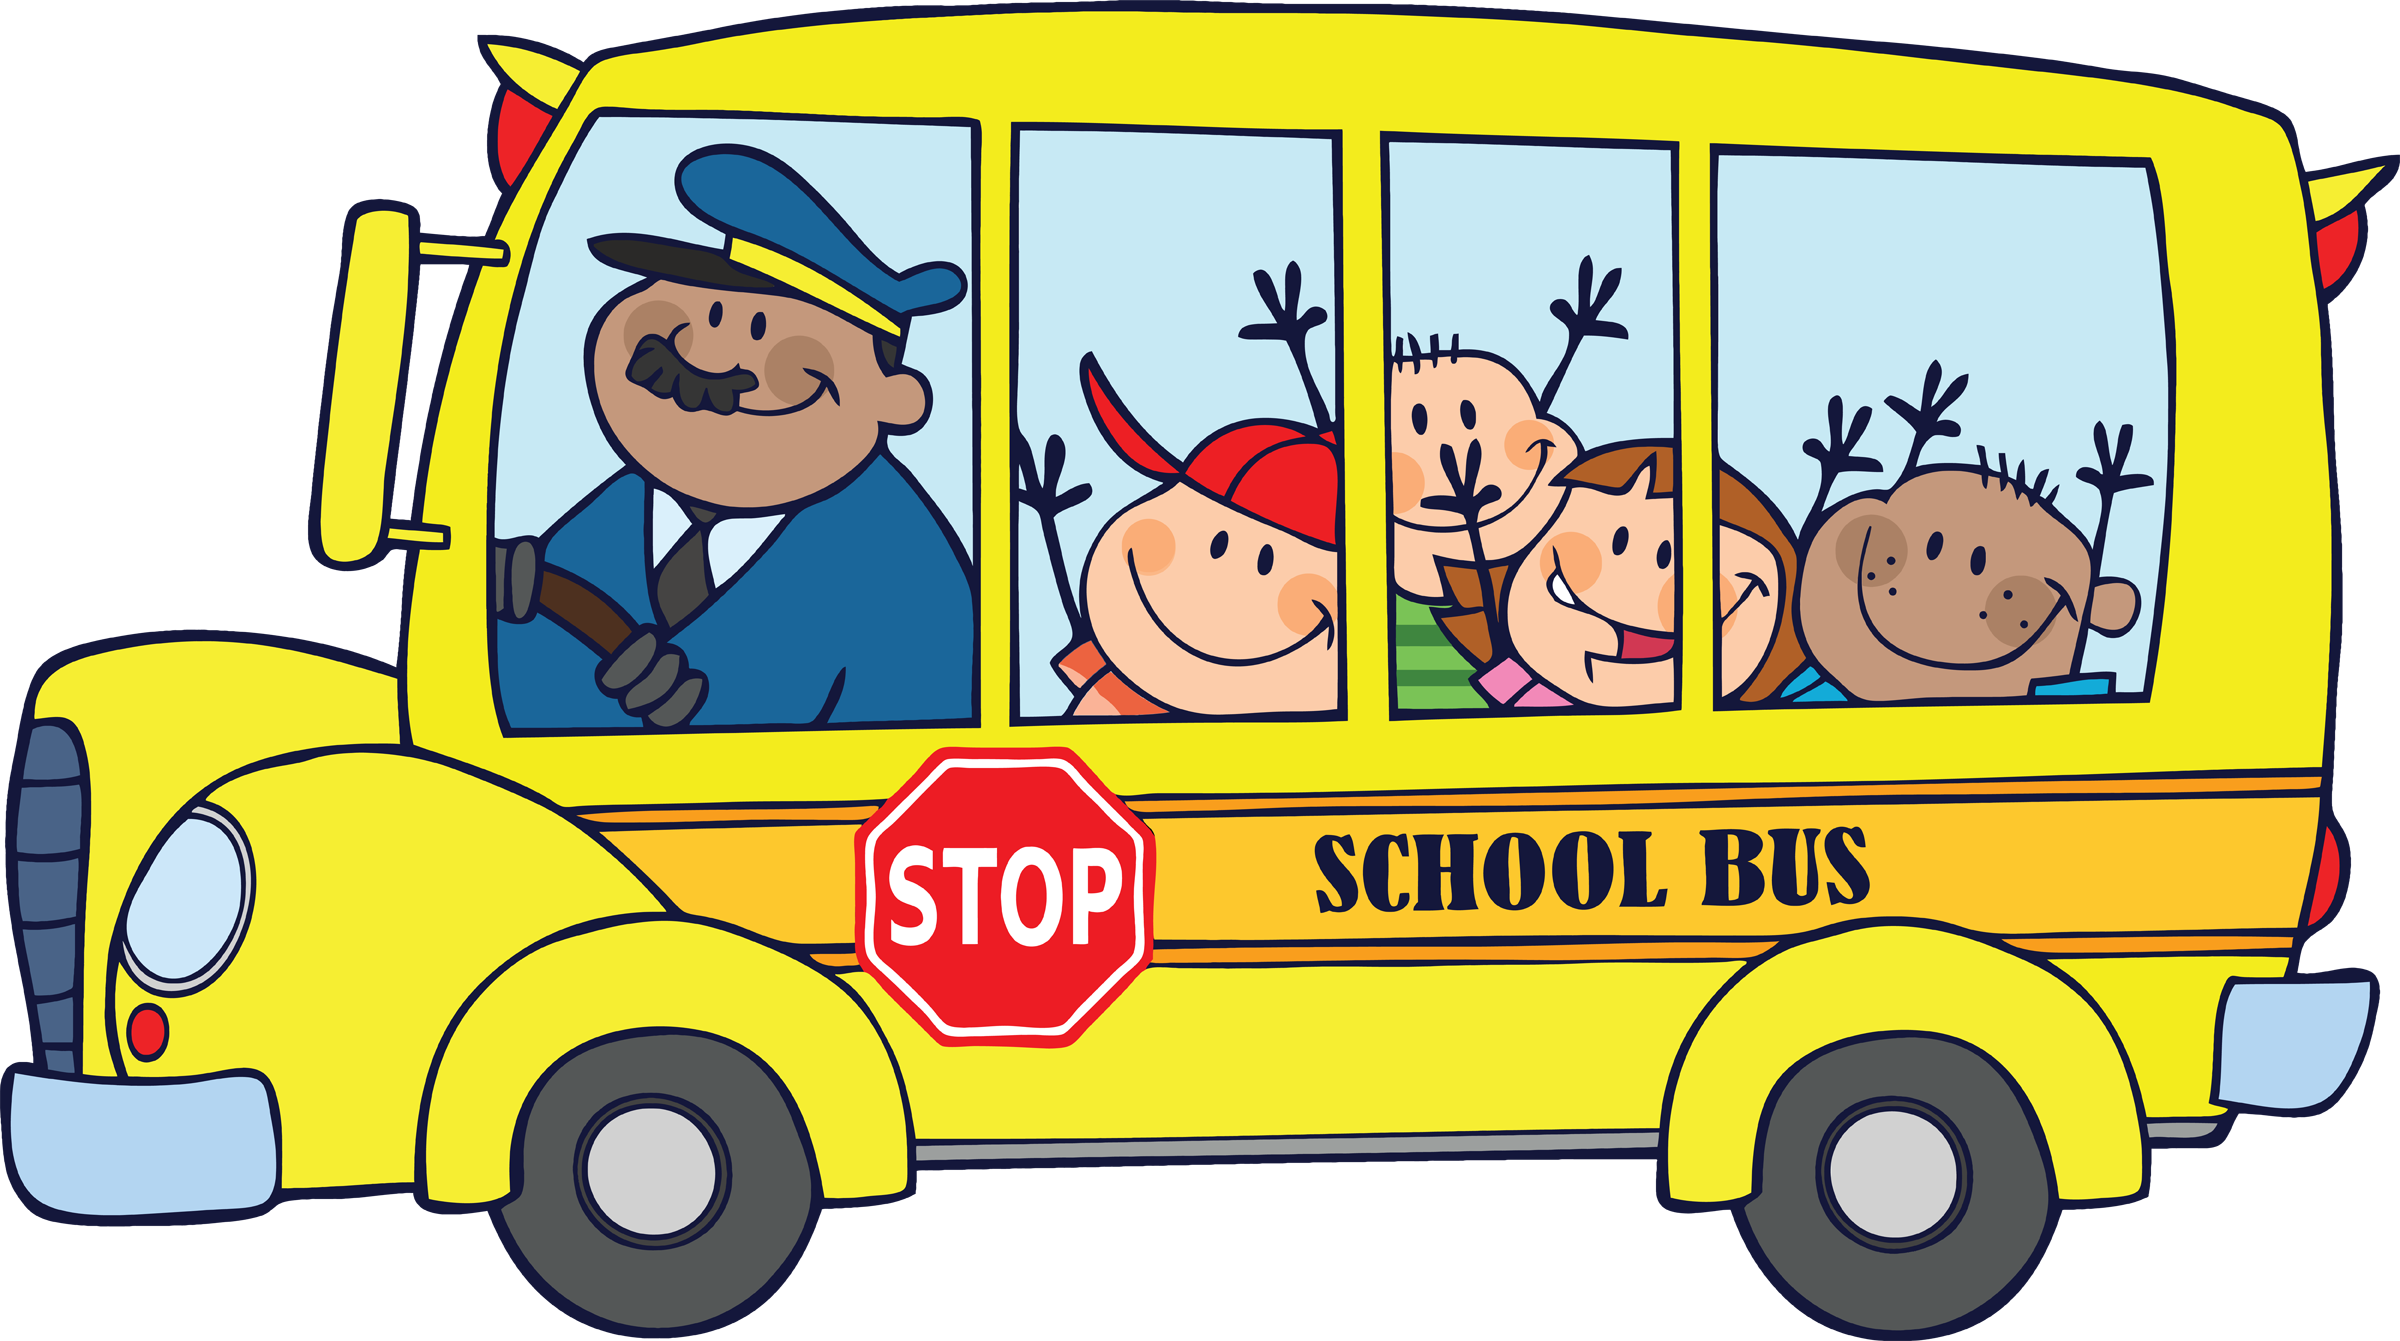 school bus driver quotes clipart panda free clipart images rh pinterest com clipart school bus free clipart school bus black and white